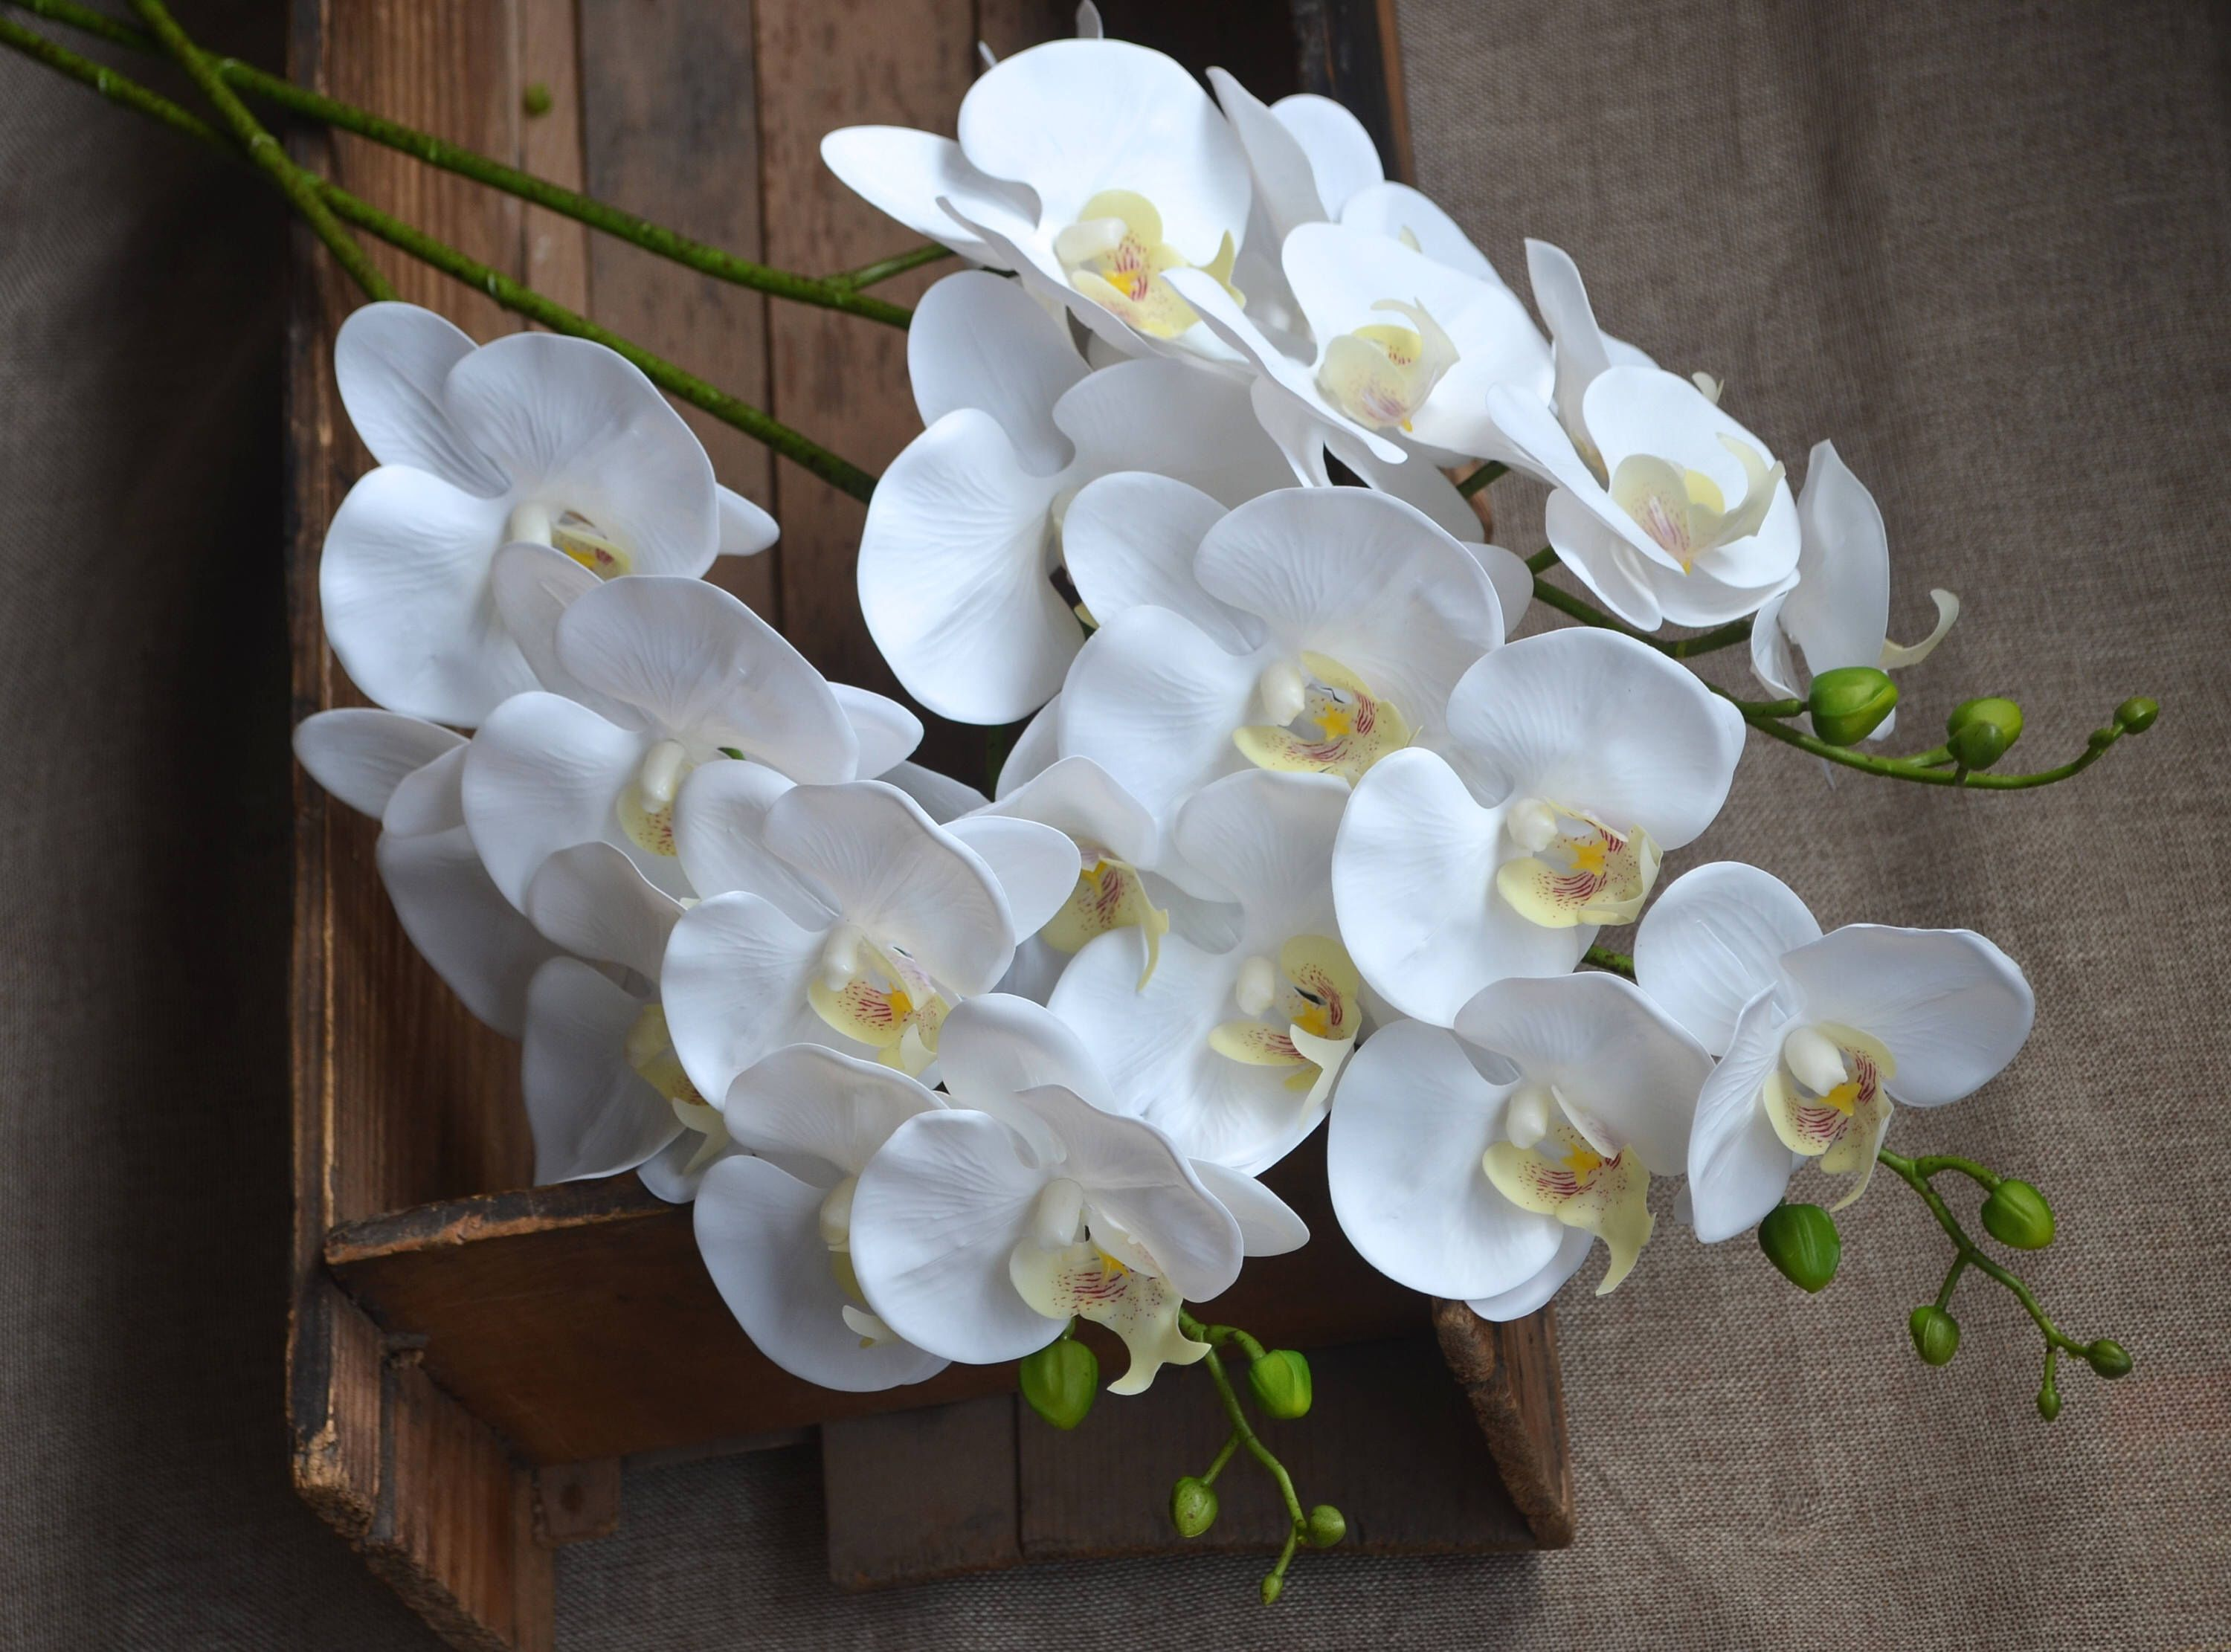 White orchids real touch flowers phalaenopsis true touch artificial white orchids real touch flowers phalaenopsis true touch artificial orchids diy silk wedding bouquets wedding centerpieces izmirmasajfo